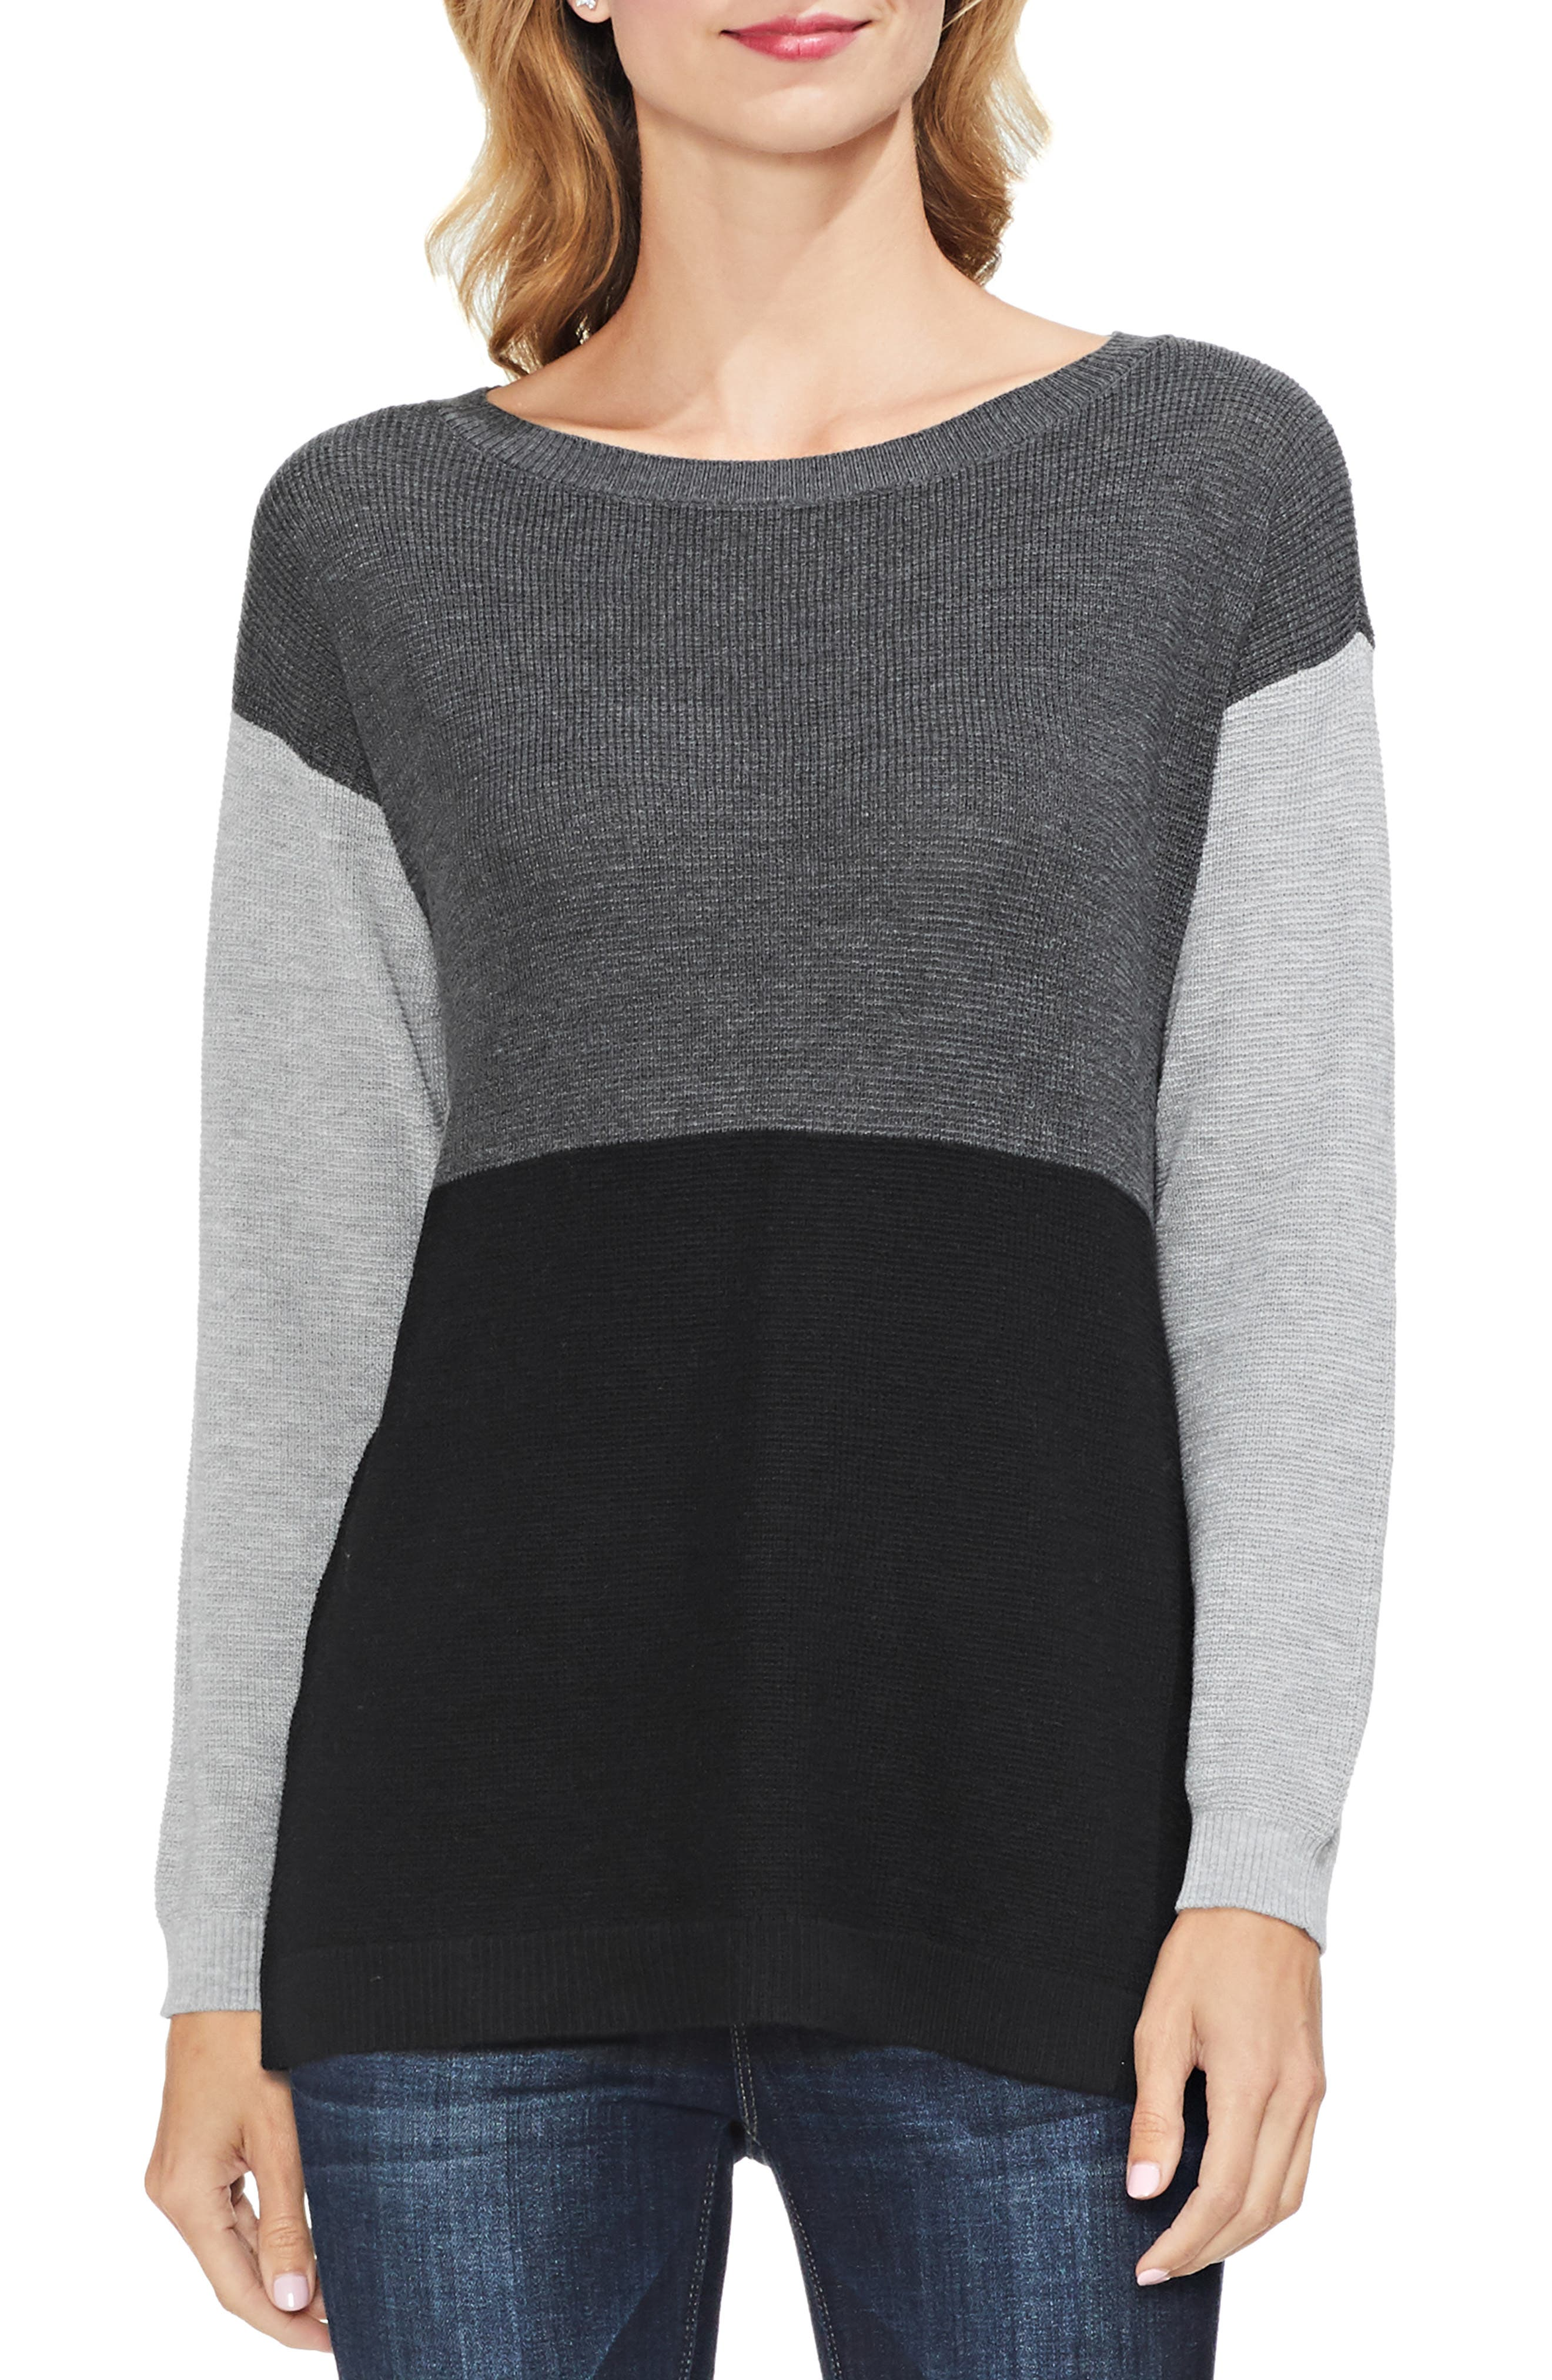 Colorblock Sweater,                             Main thumbnail 1, color,                             MED HEATHER GREY